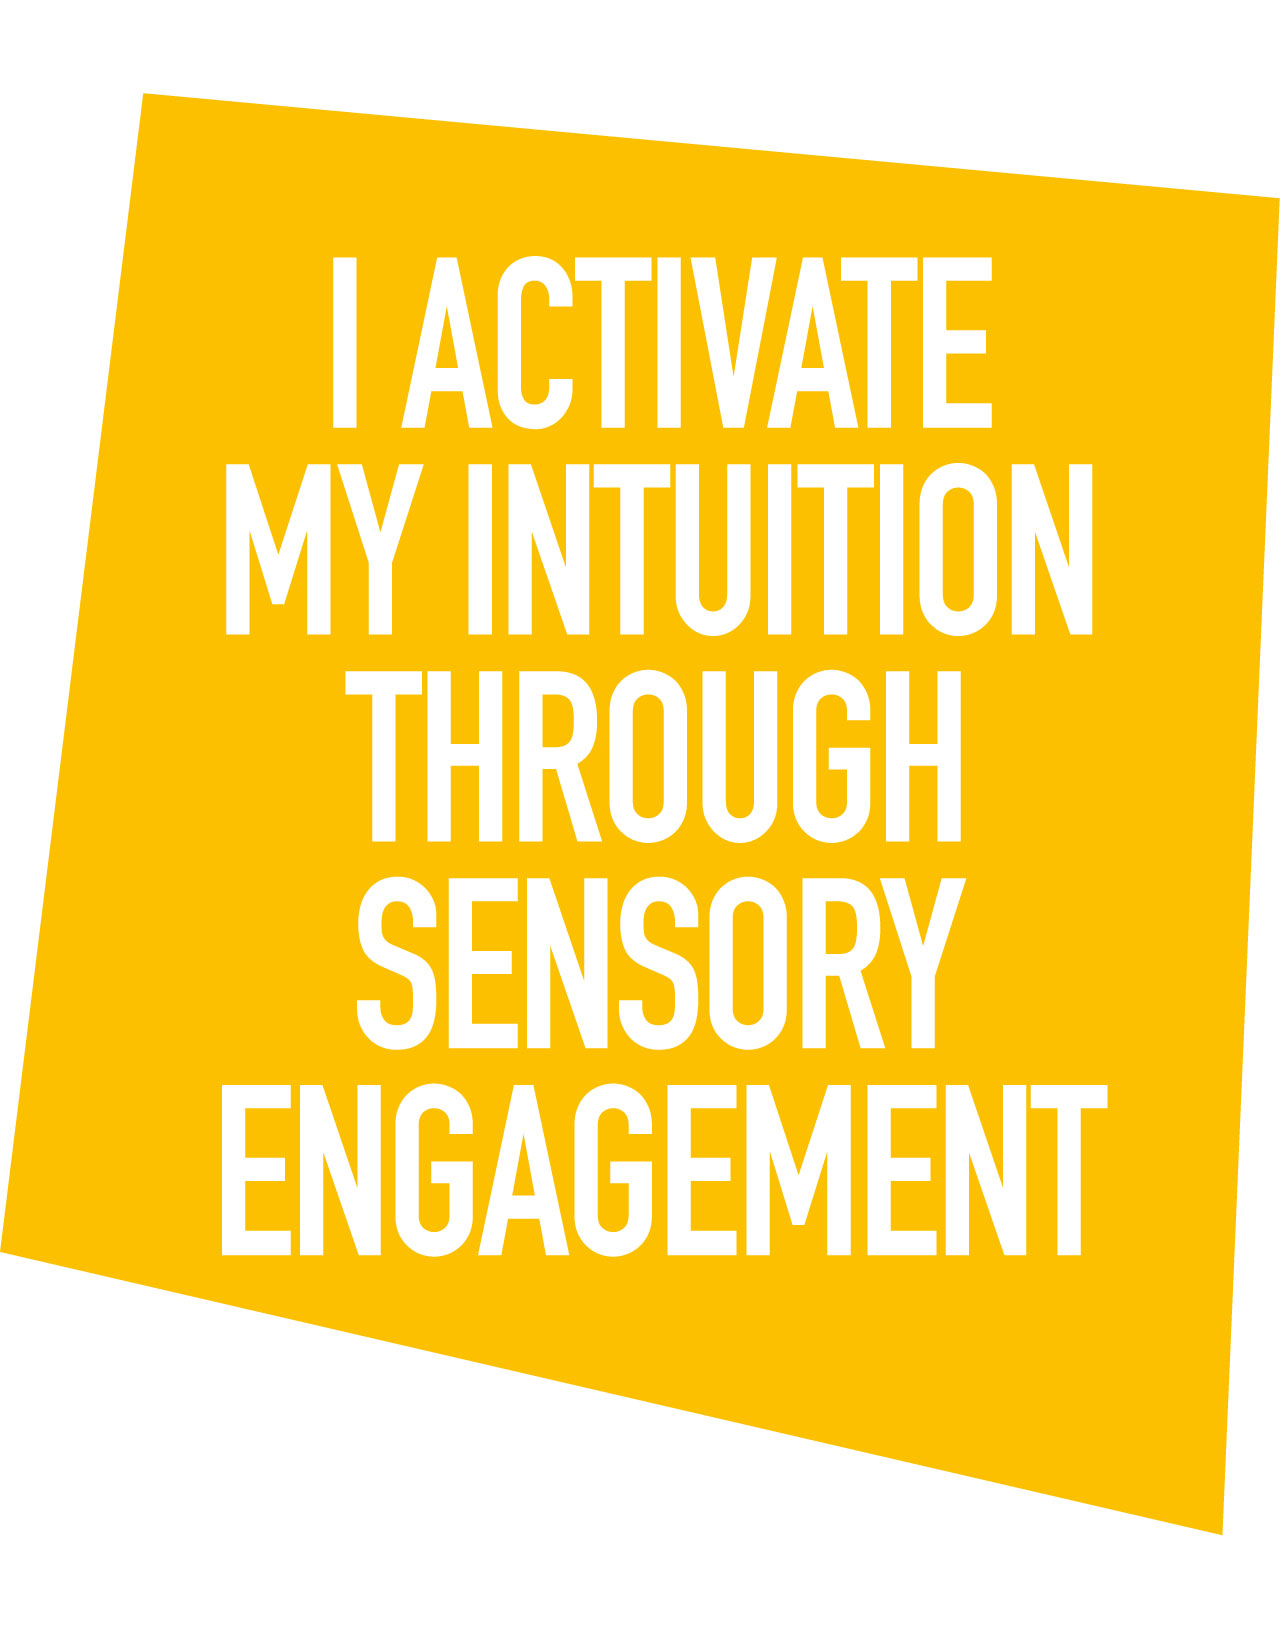 How I Activate My Intuition through Sensory Engagement